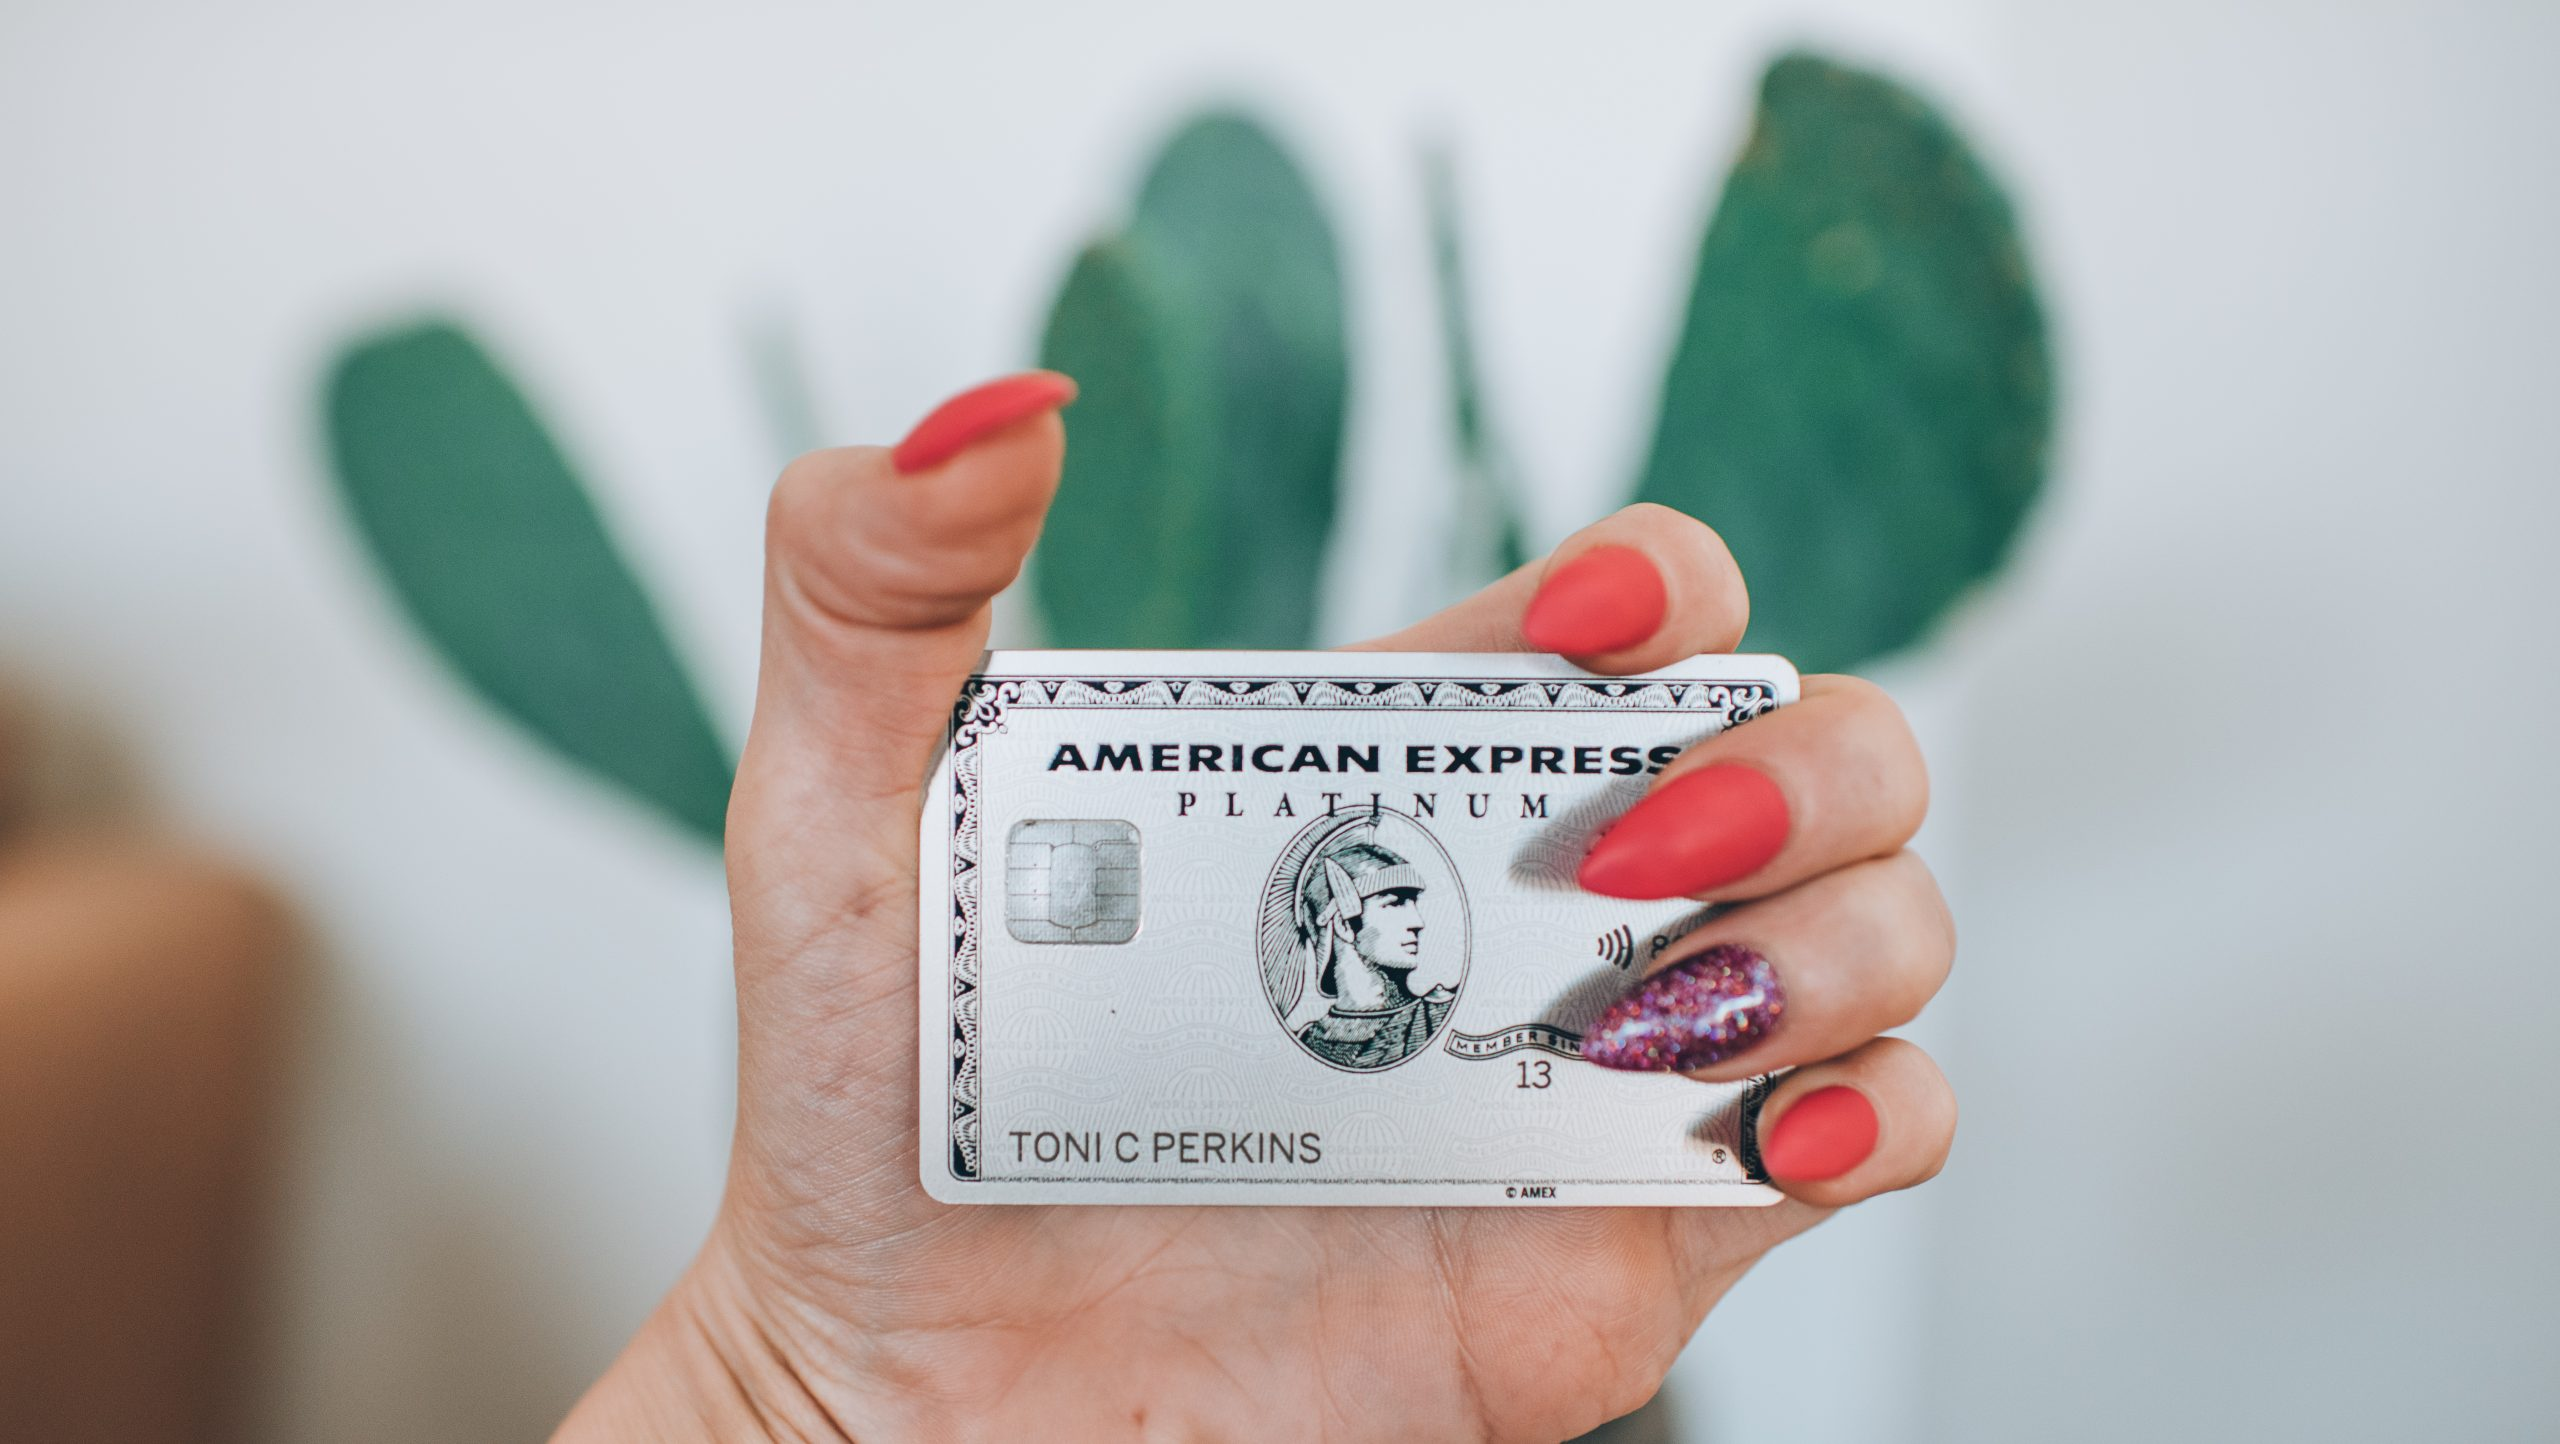 The PayPal credit helps keep the Amex Platinum valuable